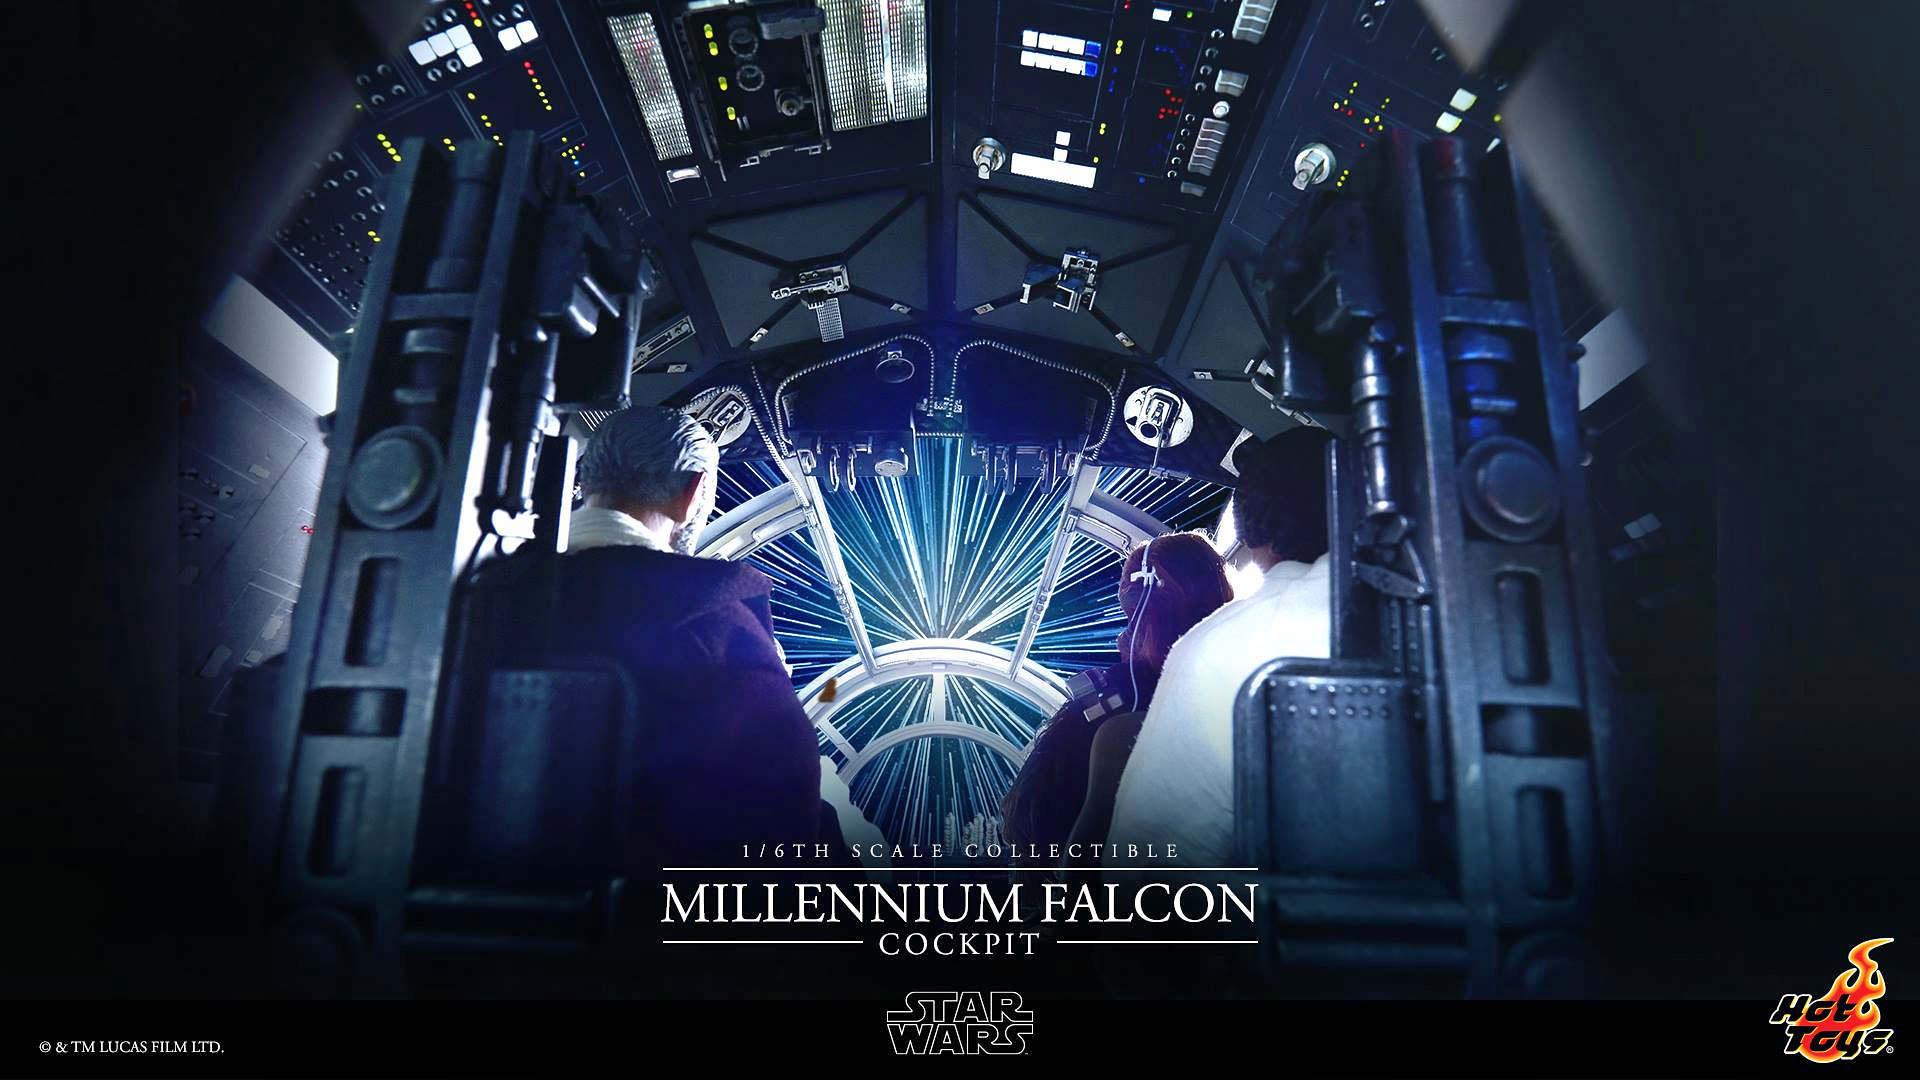 STAR WARS: THE FORCE AWAKENS Millennium Falcon Images Worthy 1600×1119 Millenium  Falcon Backgrounds